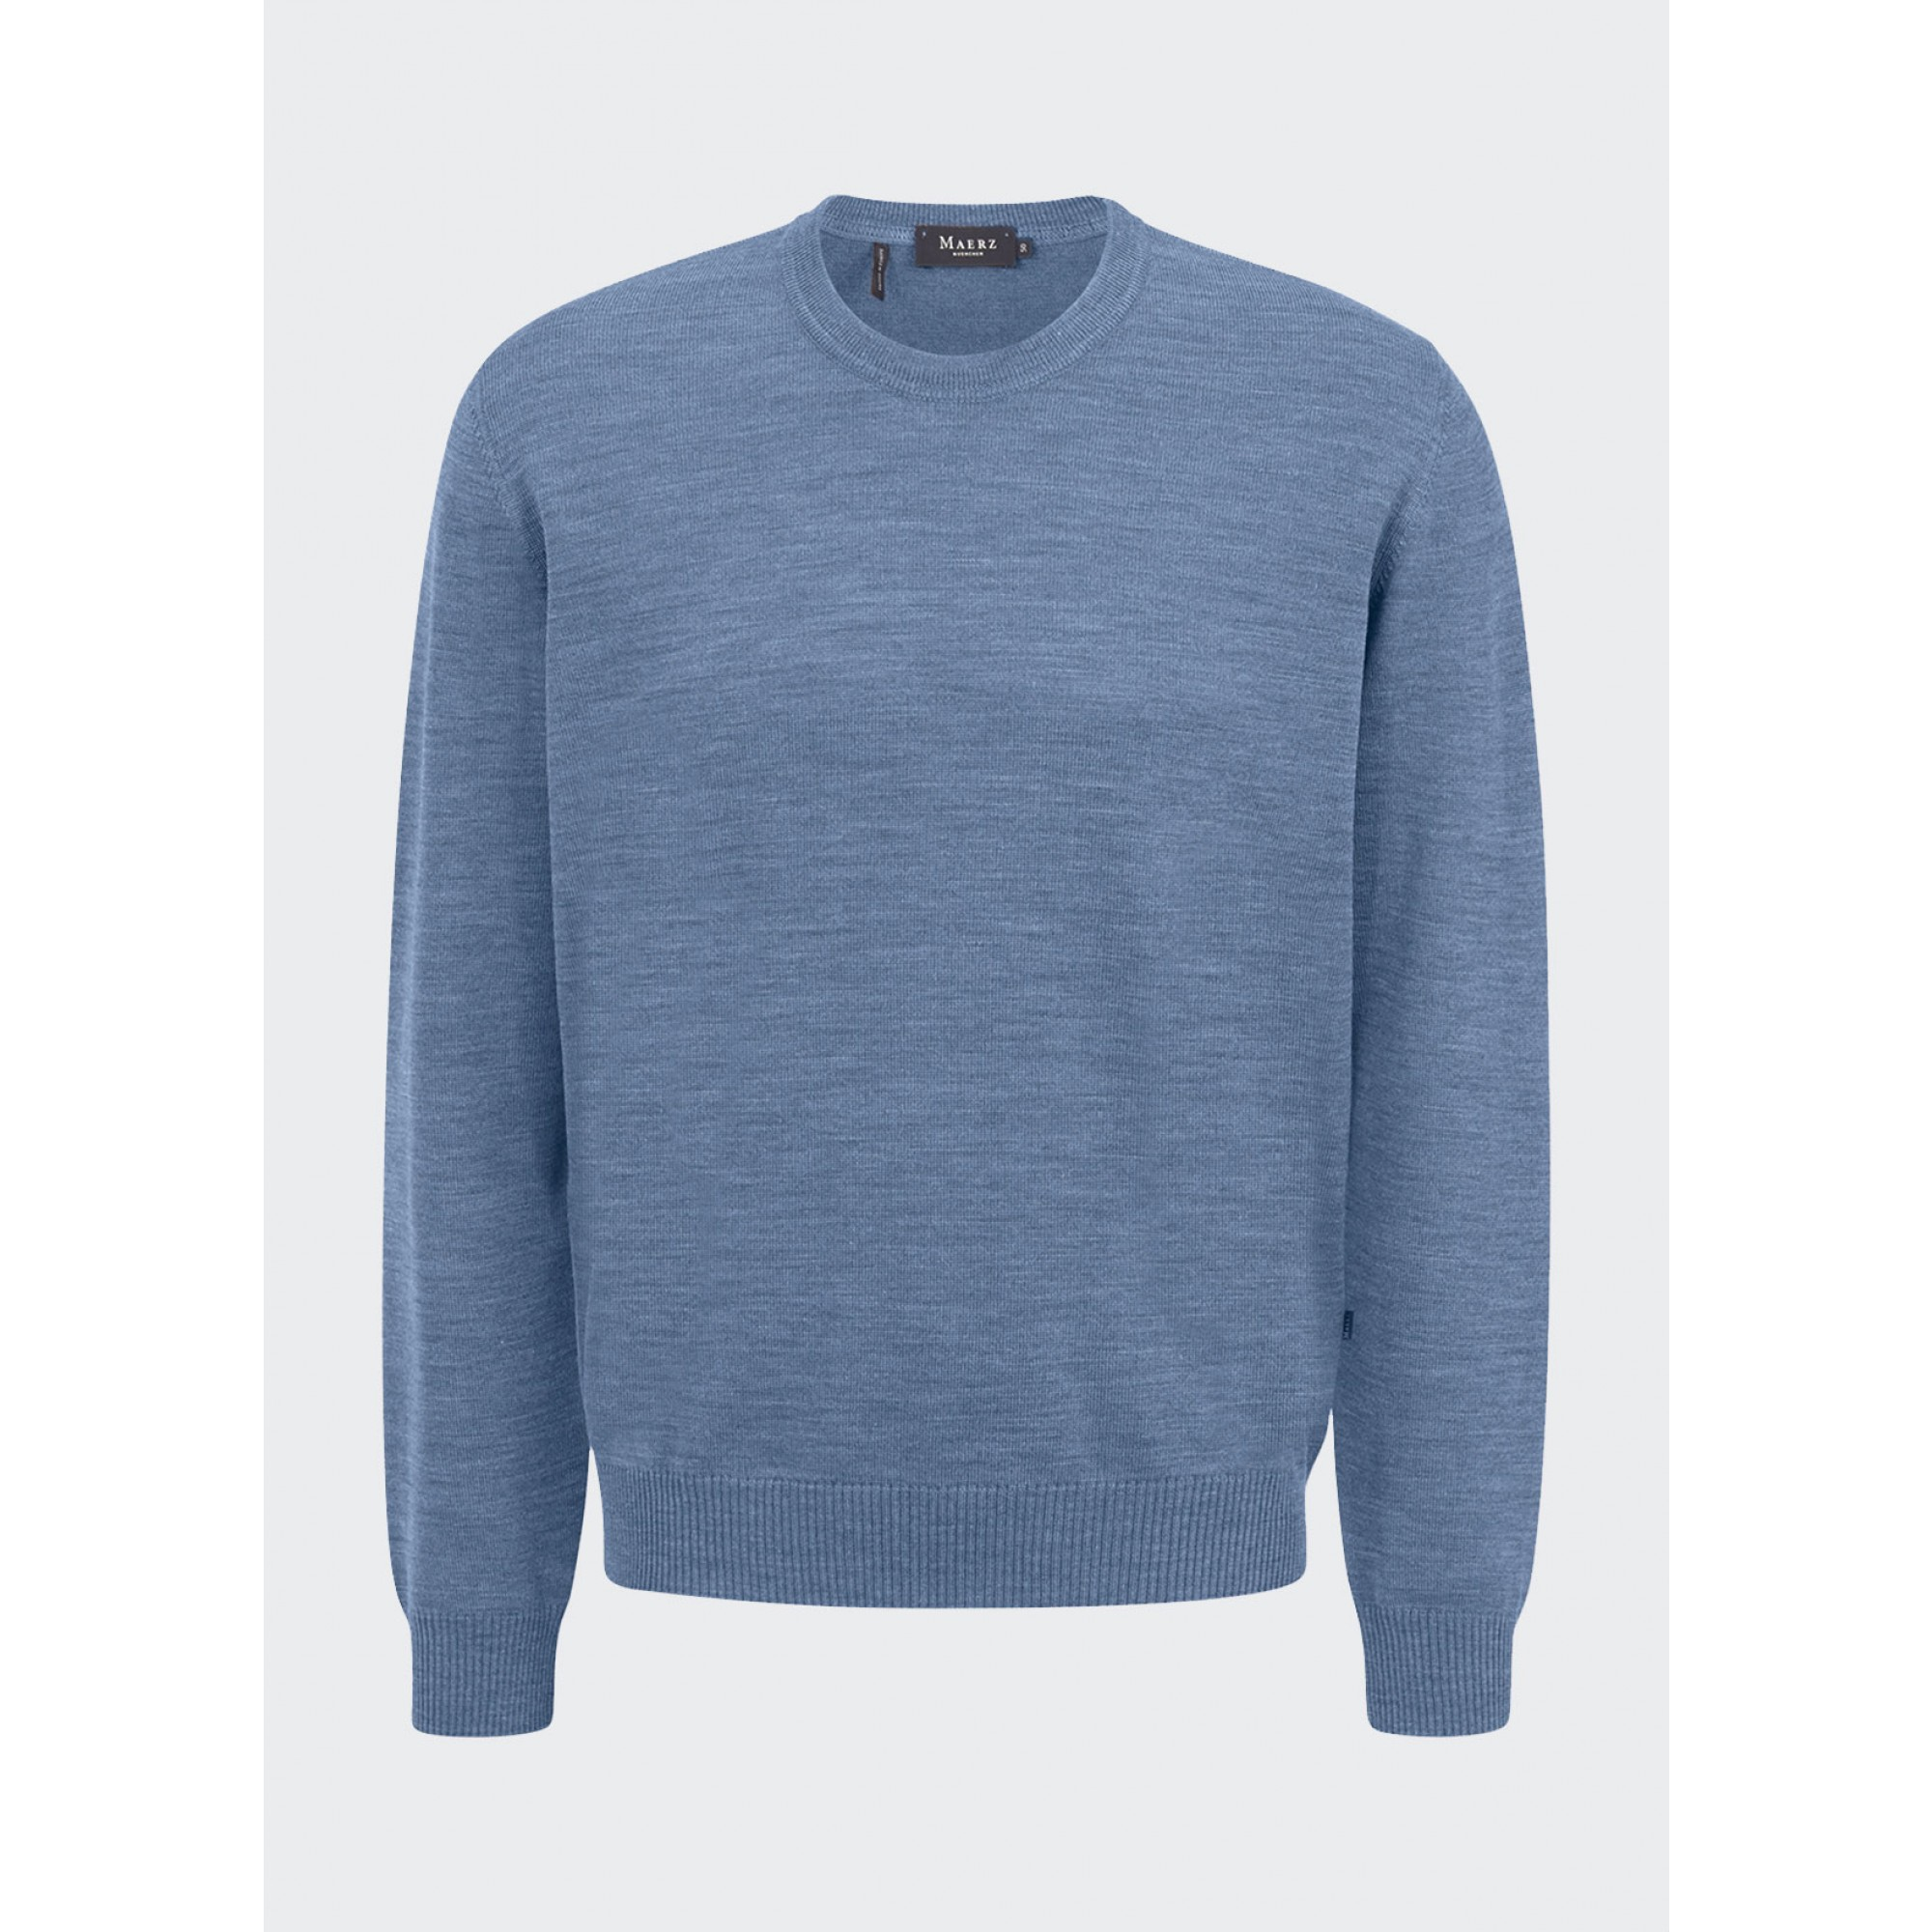 maerz - Herren Pullover Rundhals, Superwash, Classic Fit